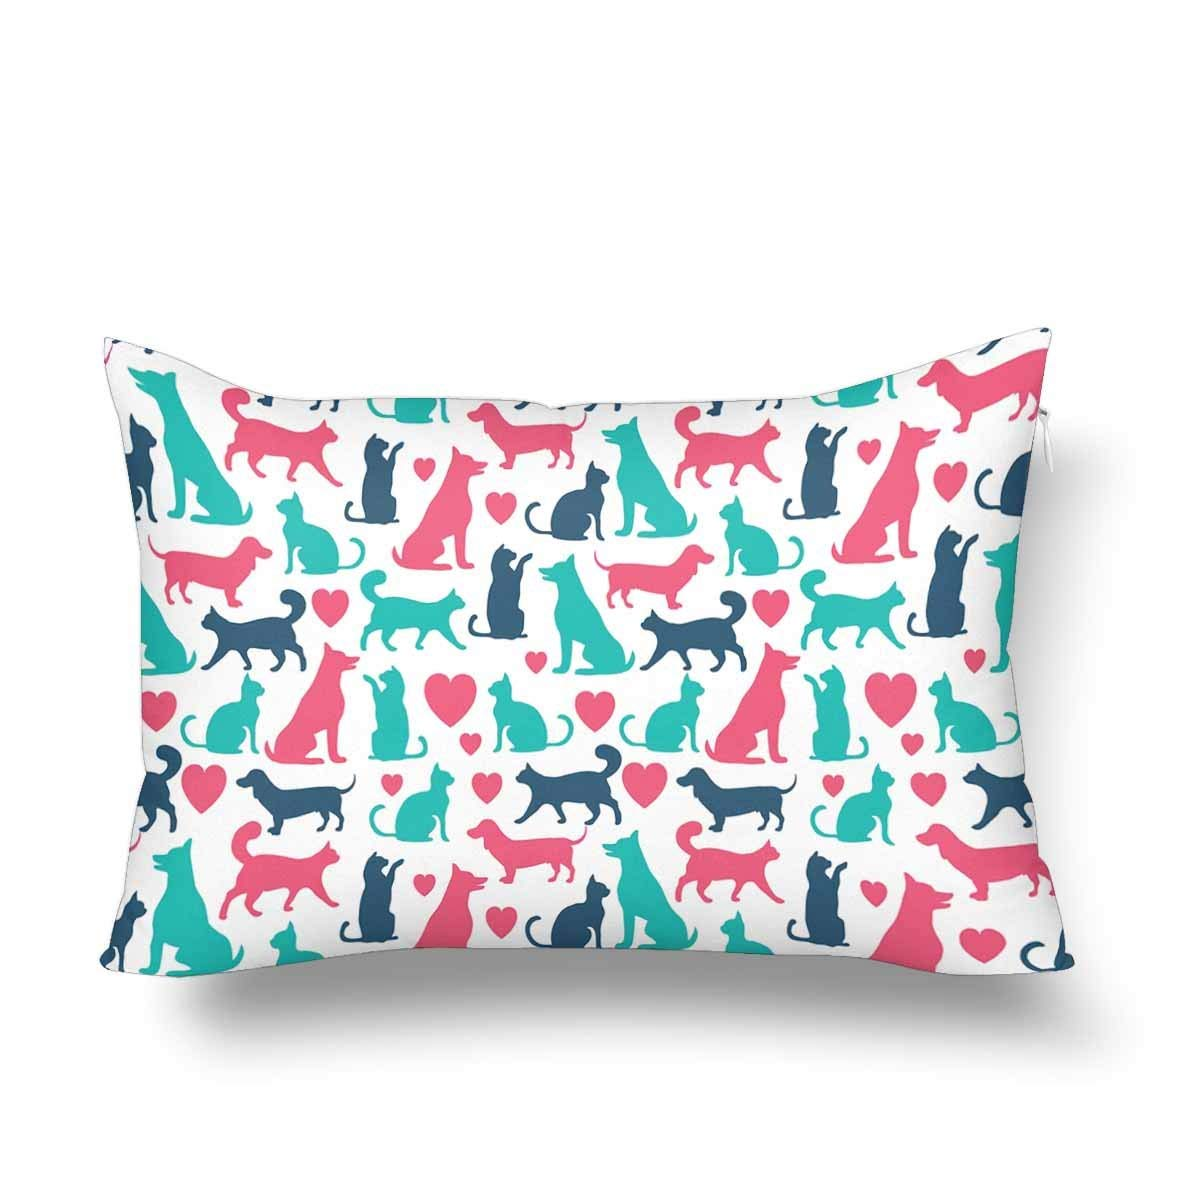 GCKG Vector Seamless Pattern Cats Dogs Cute Animal Pillow Cases Pillowcase 20x30 inches - image 4 of 4